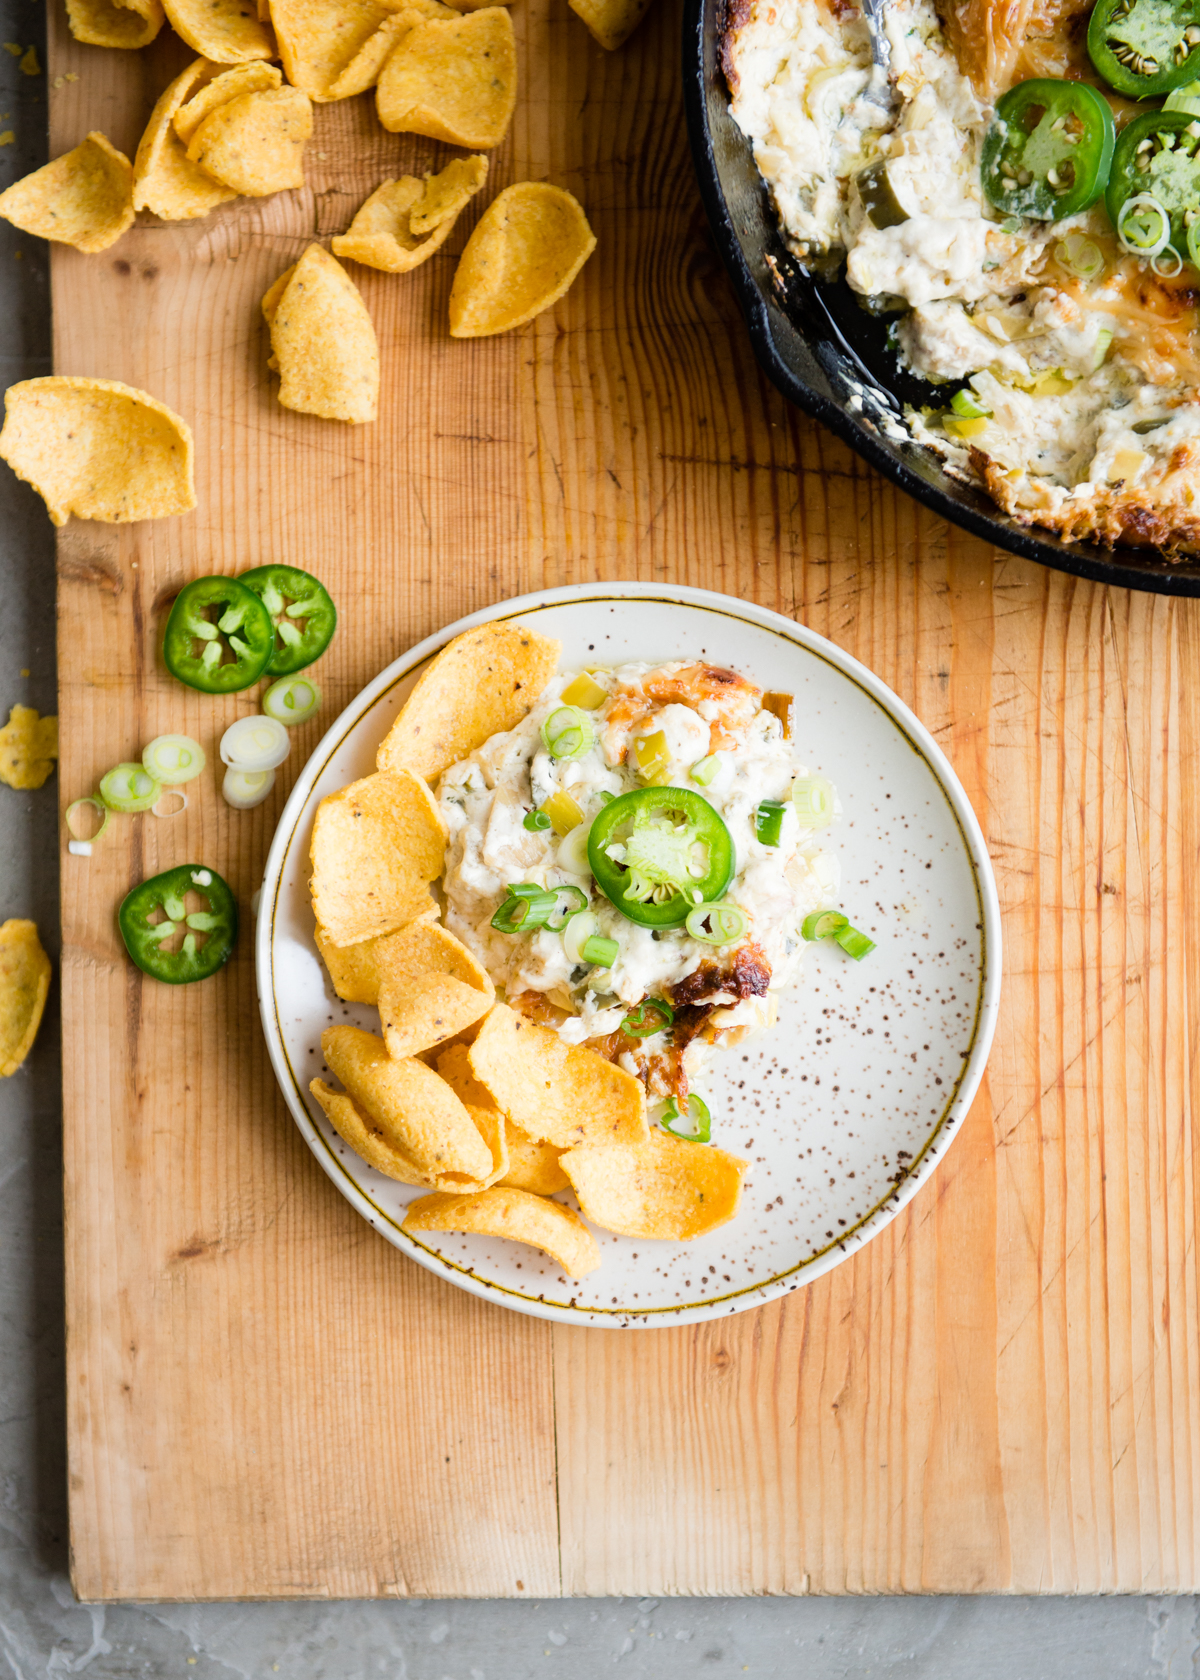 The Ultimate Spicy Jalapeño Artichoke Dip with Corn Chips | DesignMom.com